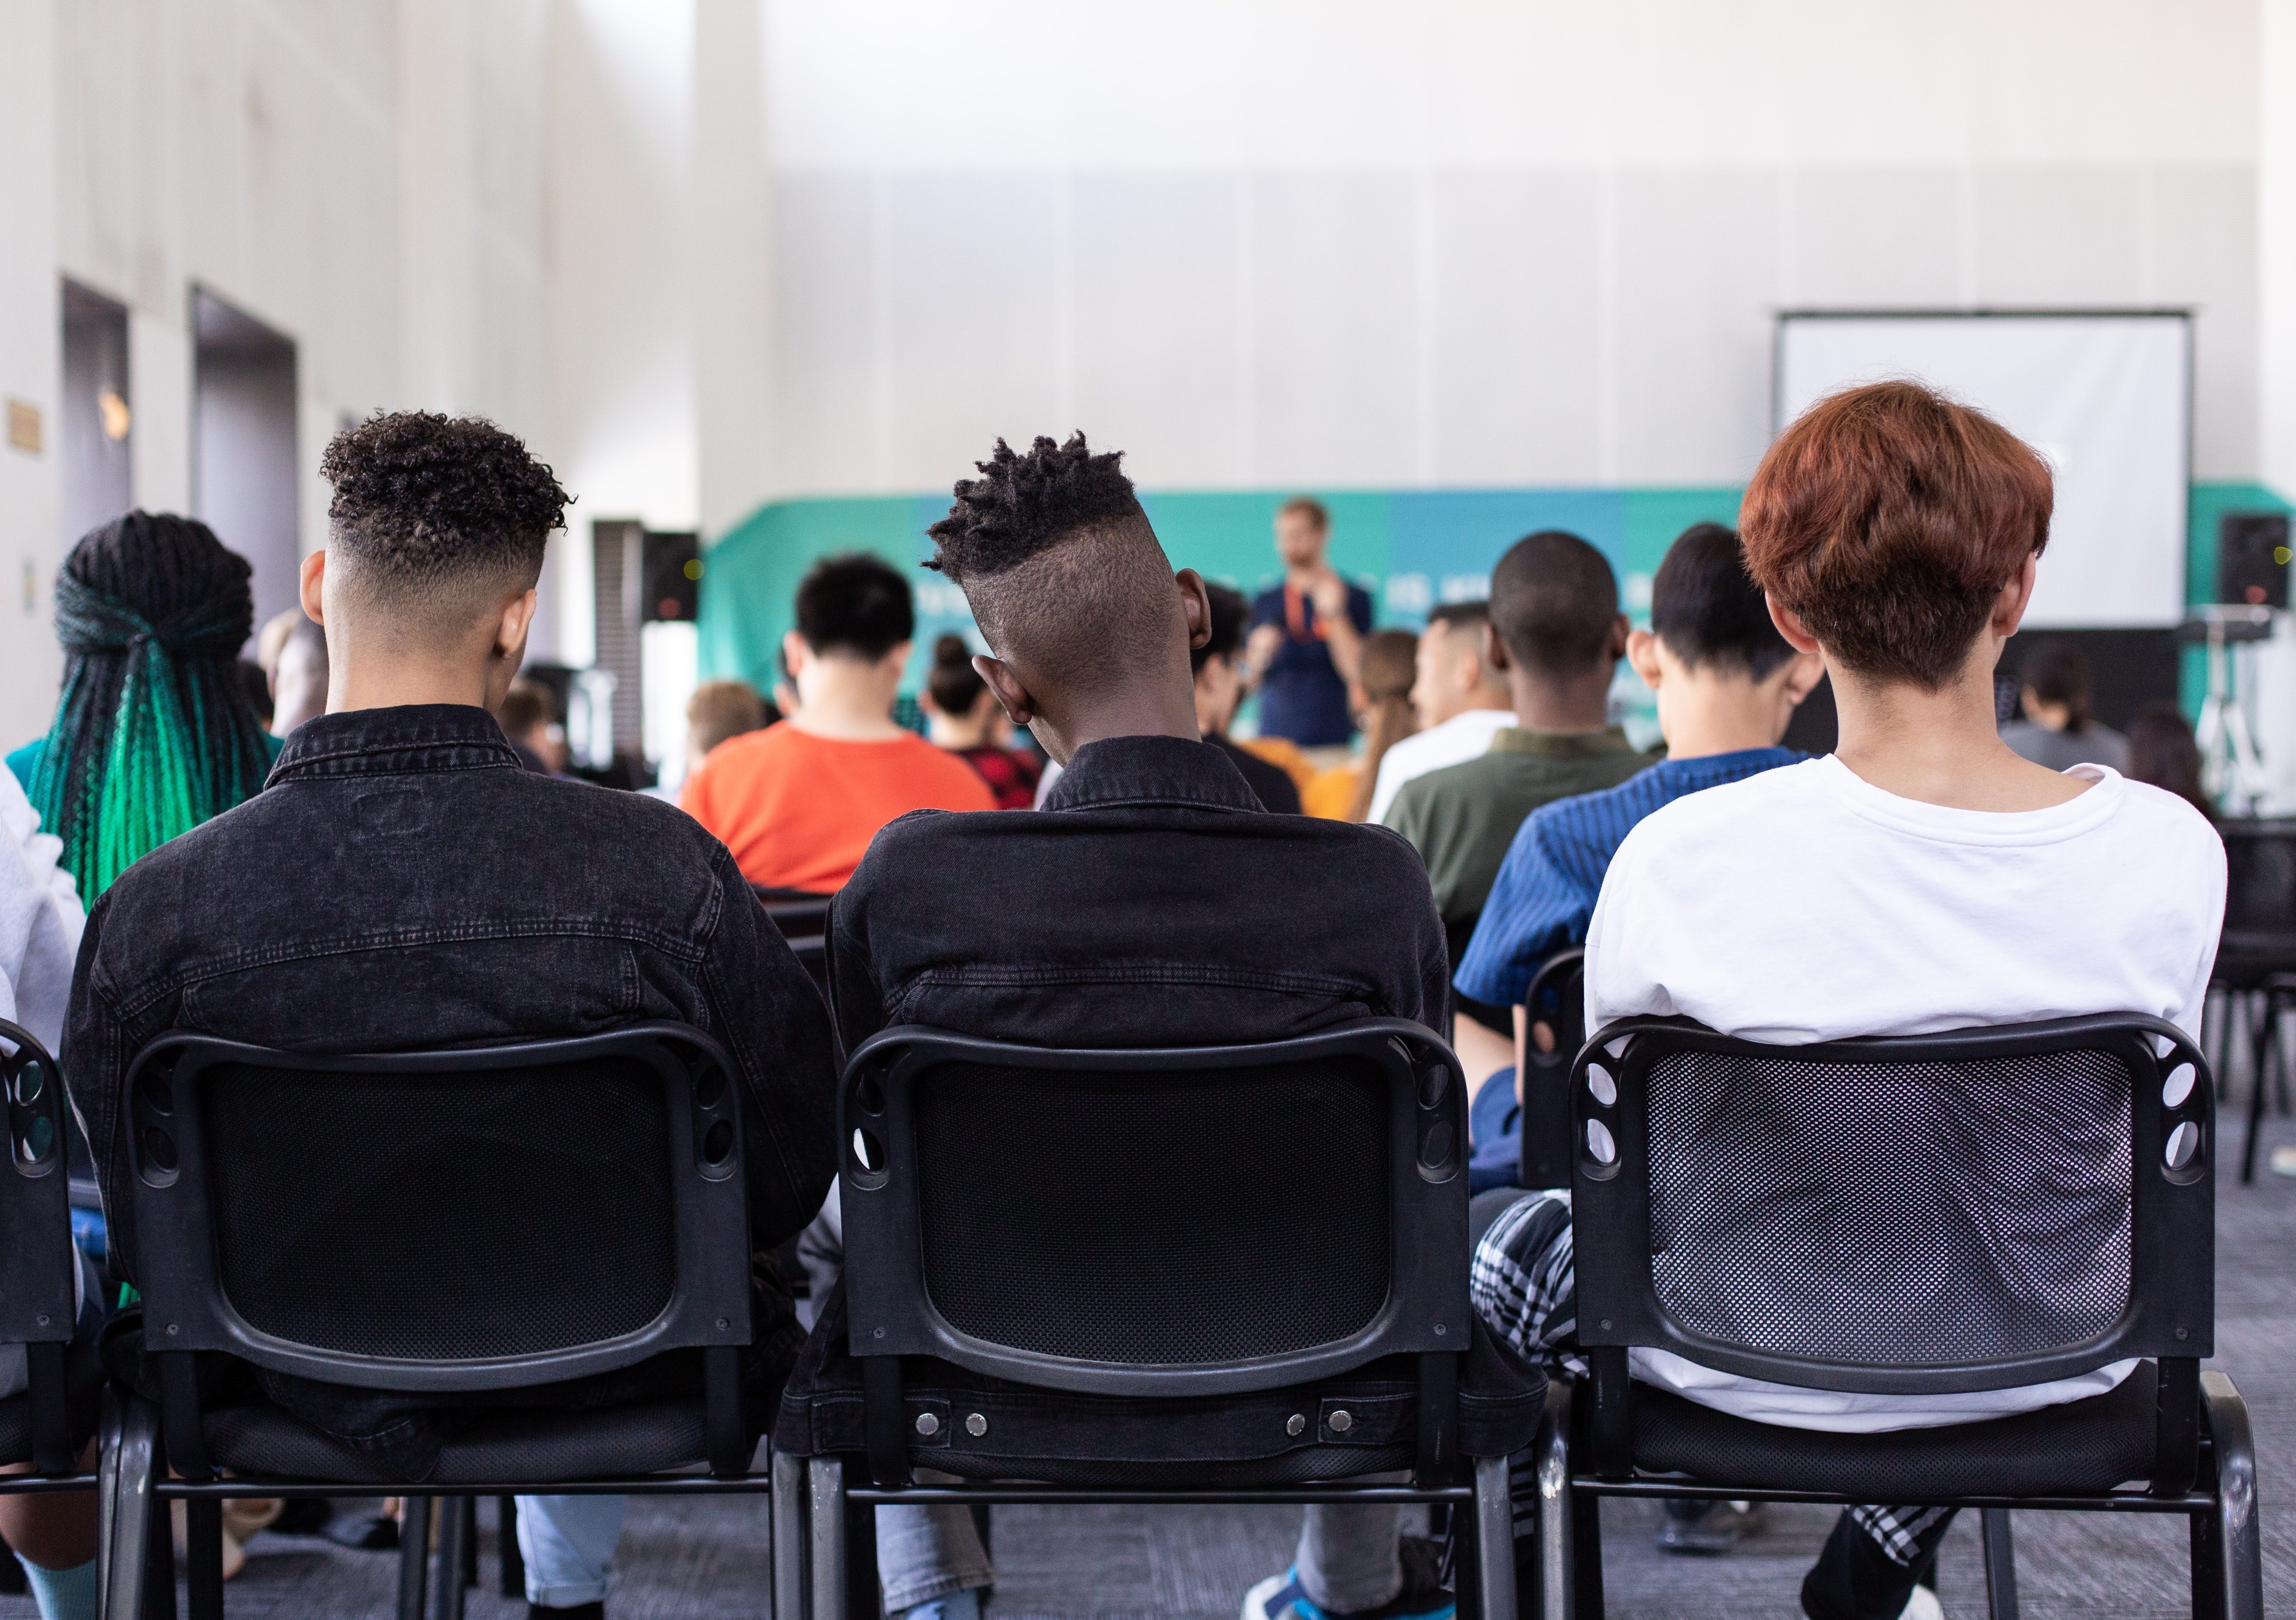 Image of a classroom lecture